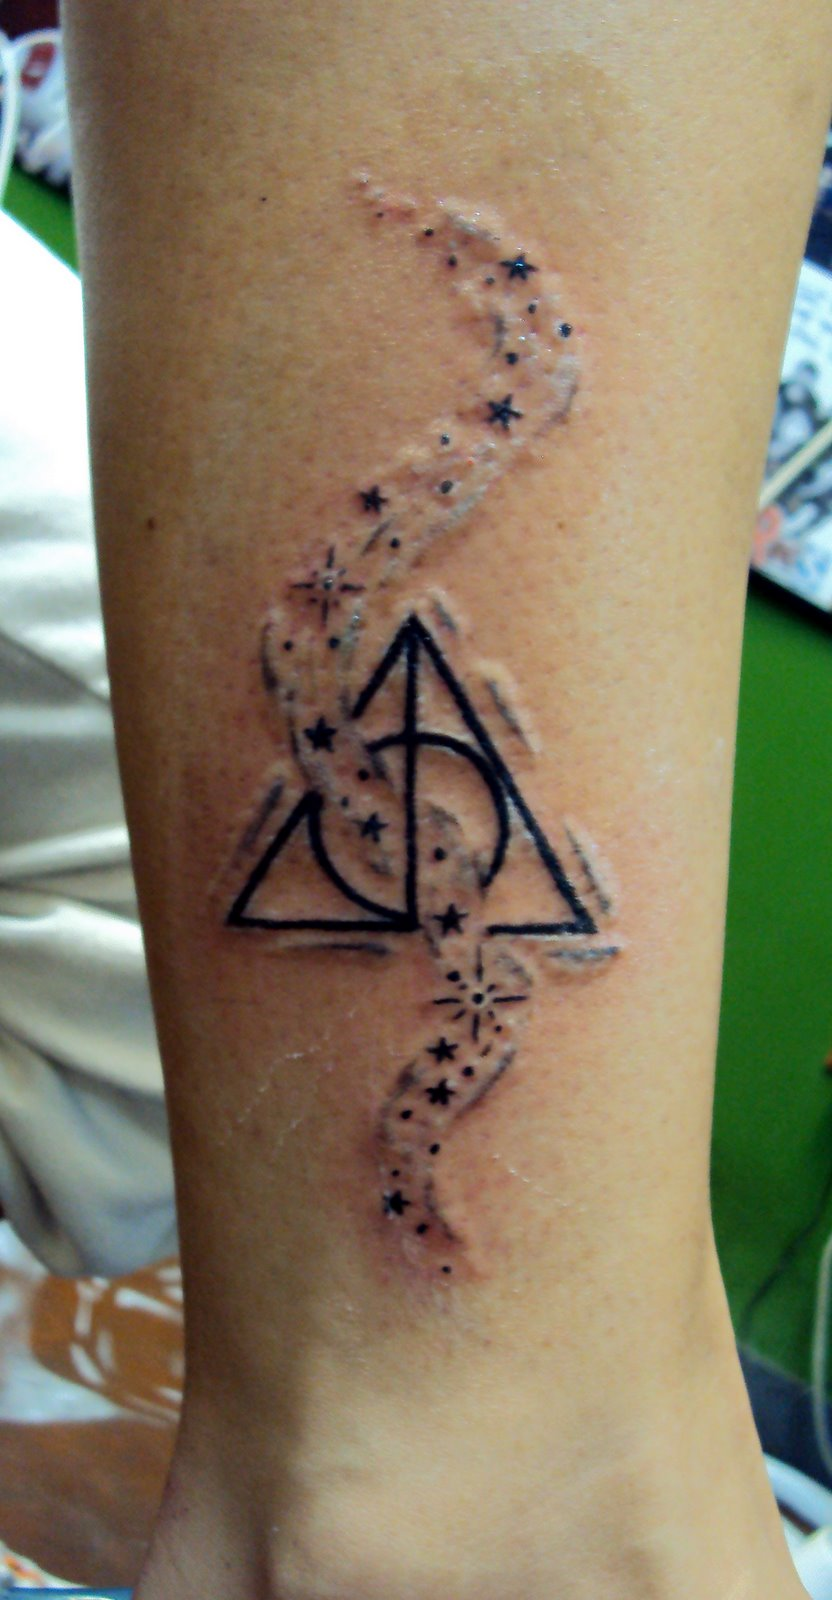 Latest gold necklace 30 cute deathly hallows symbol tattoo 30 cute deathly hallows symbol tattoo buycottarizona